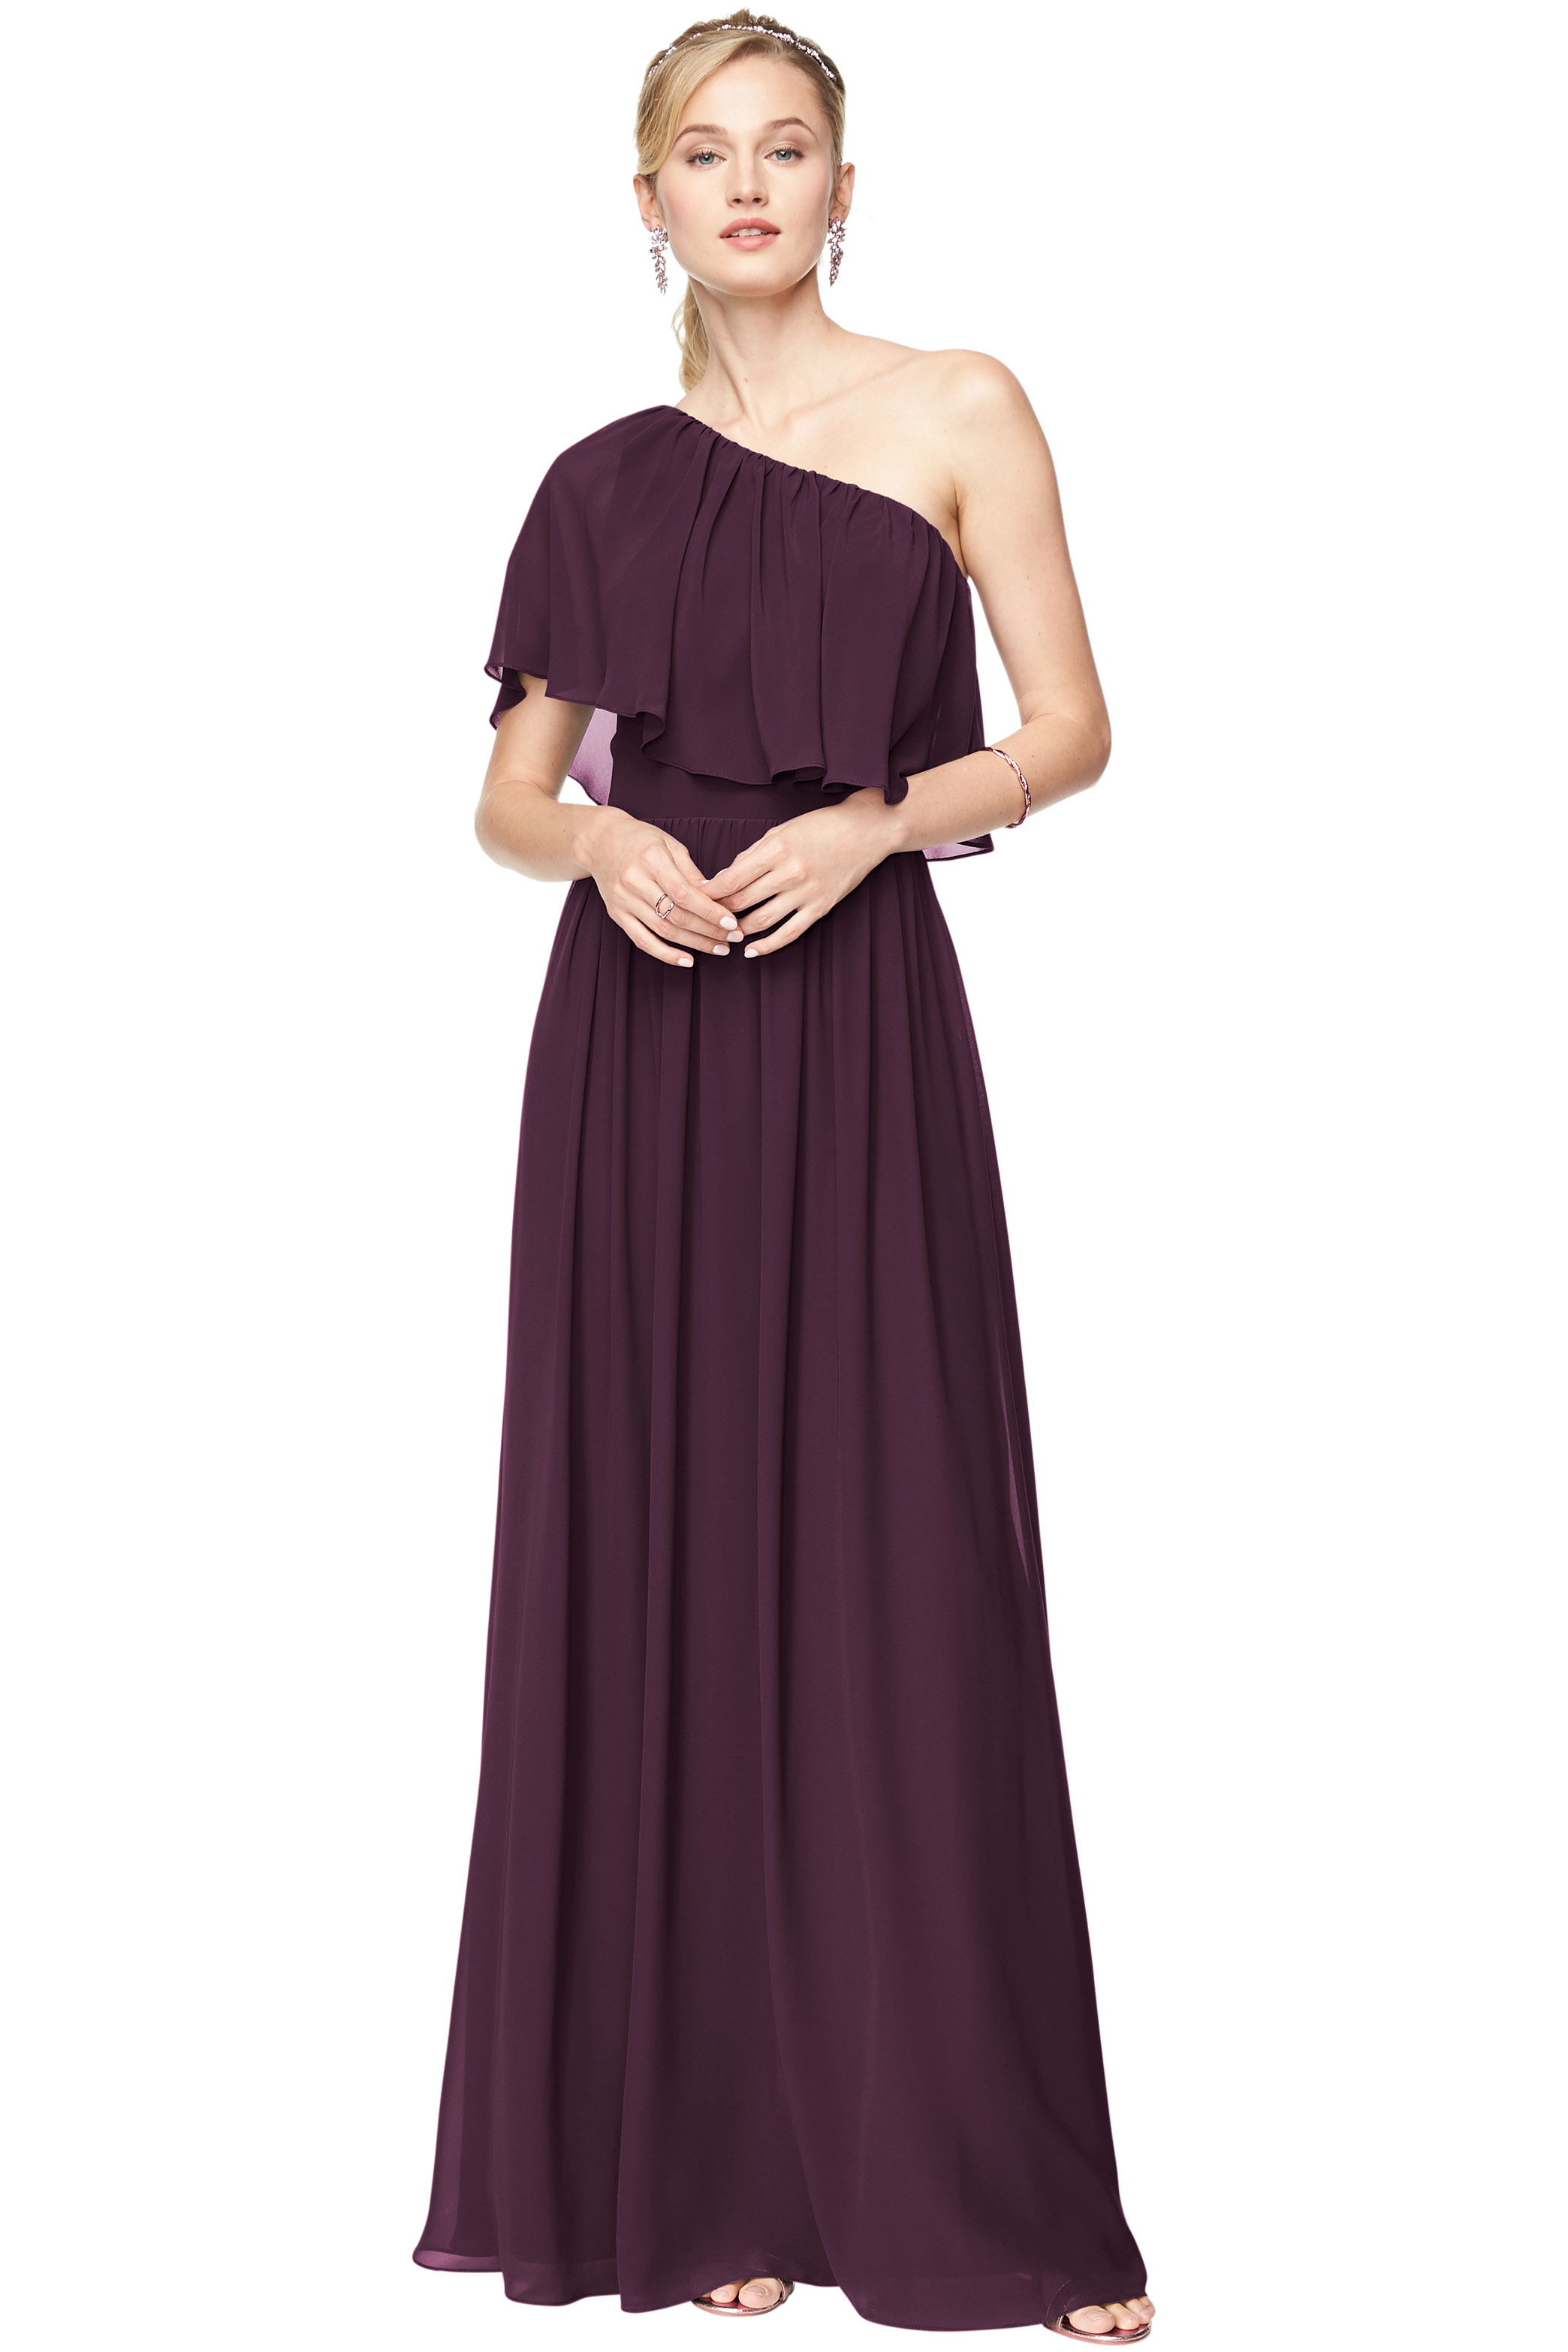 Bill Levkoff PLUM Chiffon One-Shoulder A-Line gown, $184.00 Front